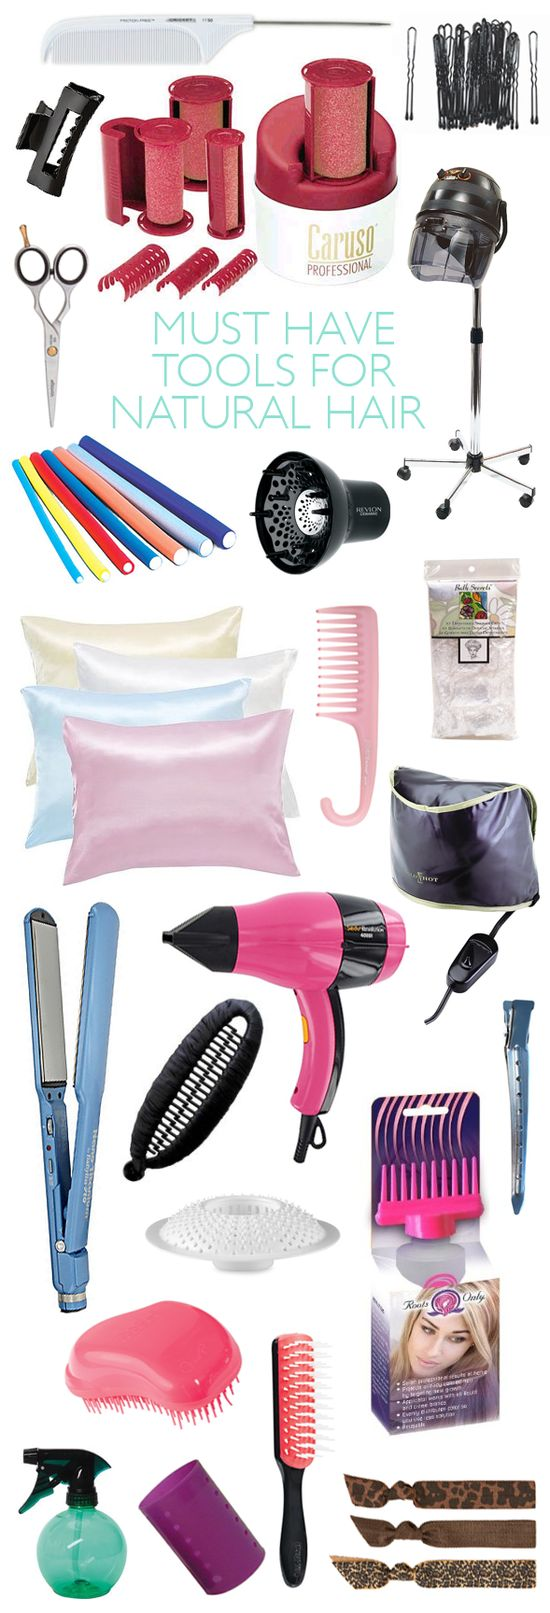 Must Have Tools For Natural Hair #NaturalHair #teamnatural